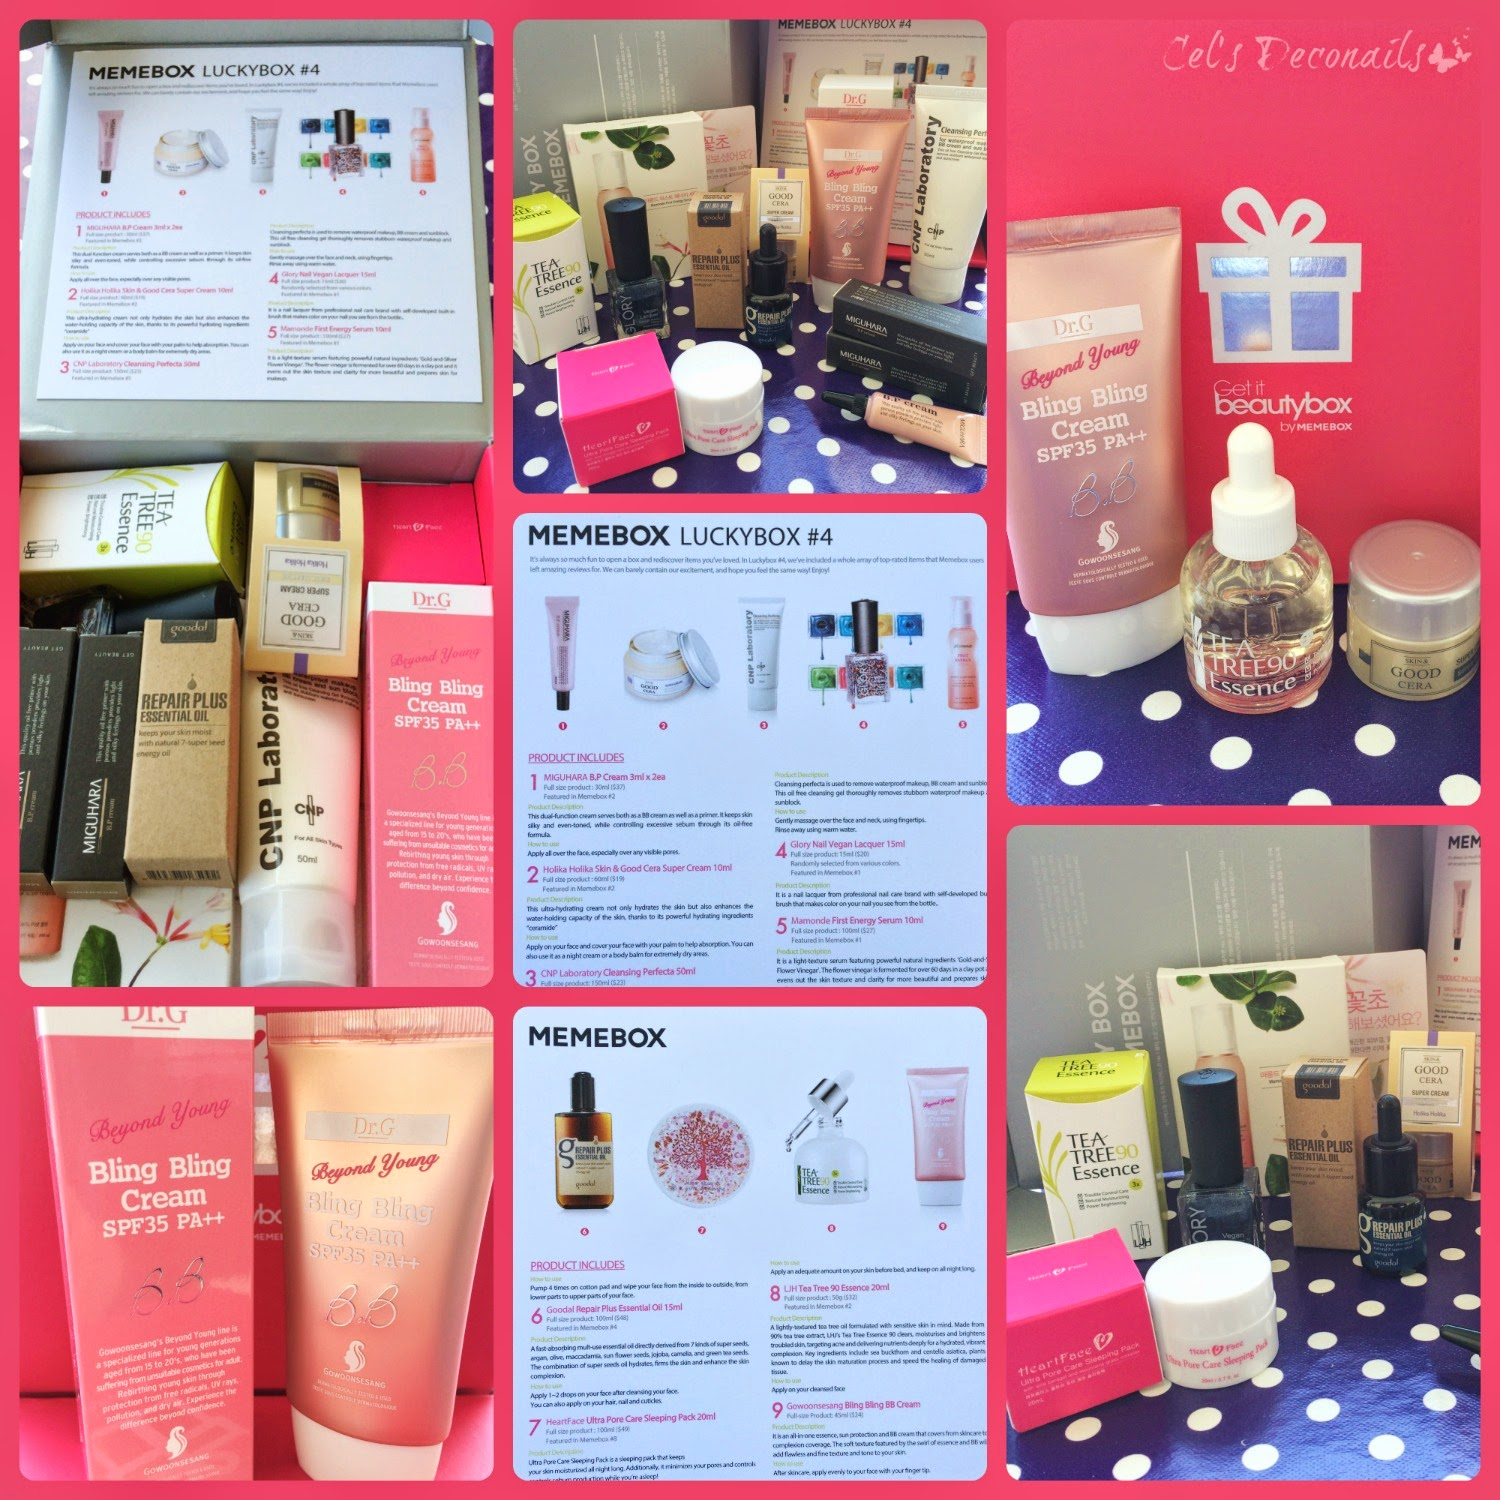 Memebox Luckybox #4 beauty box